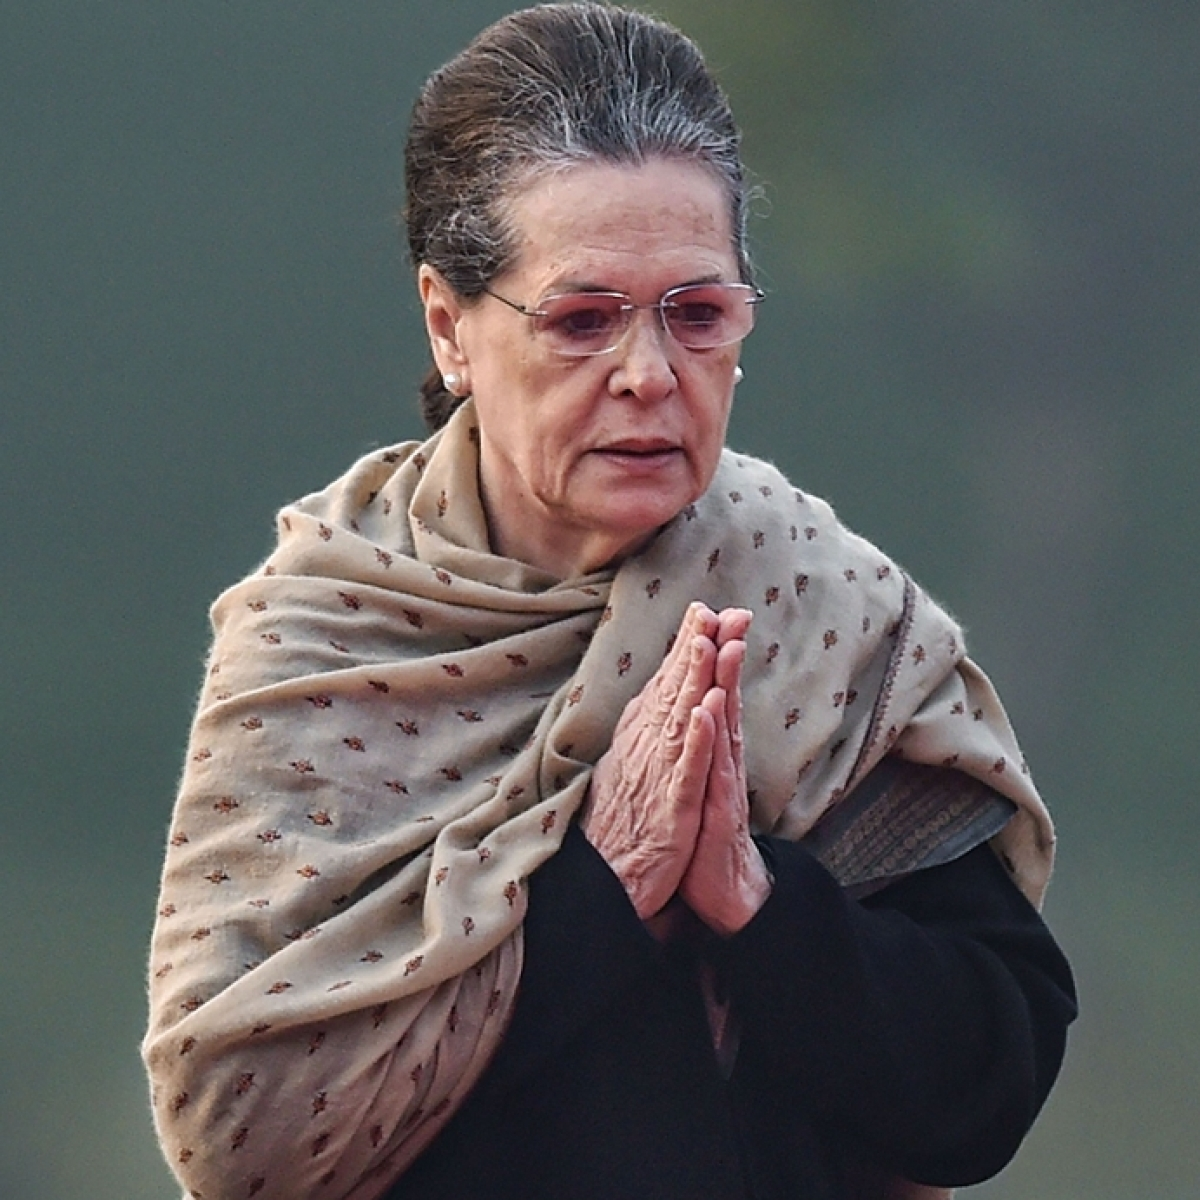 Shocking: Google shows Cong president Sonia Gandhi's pictures when you search 'Italian Bar Dancer'